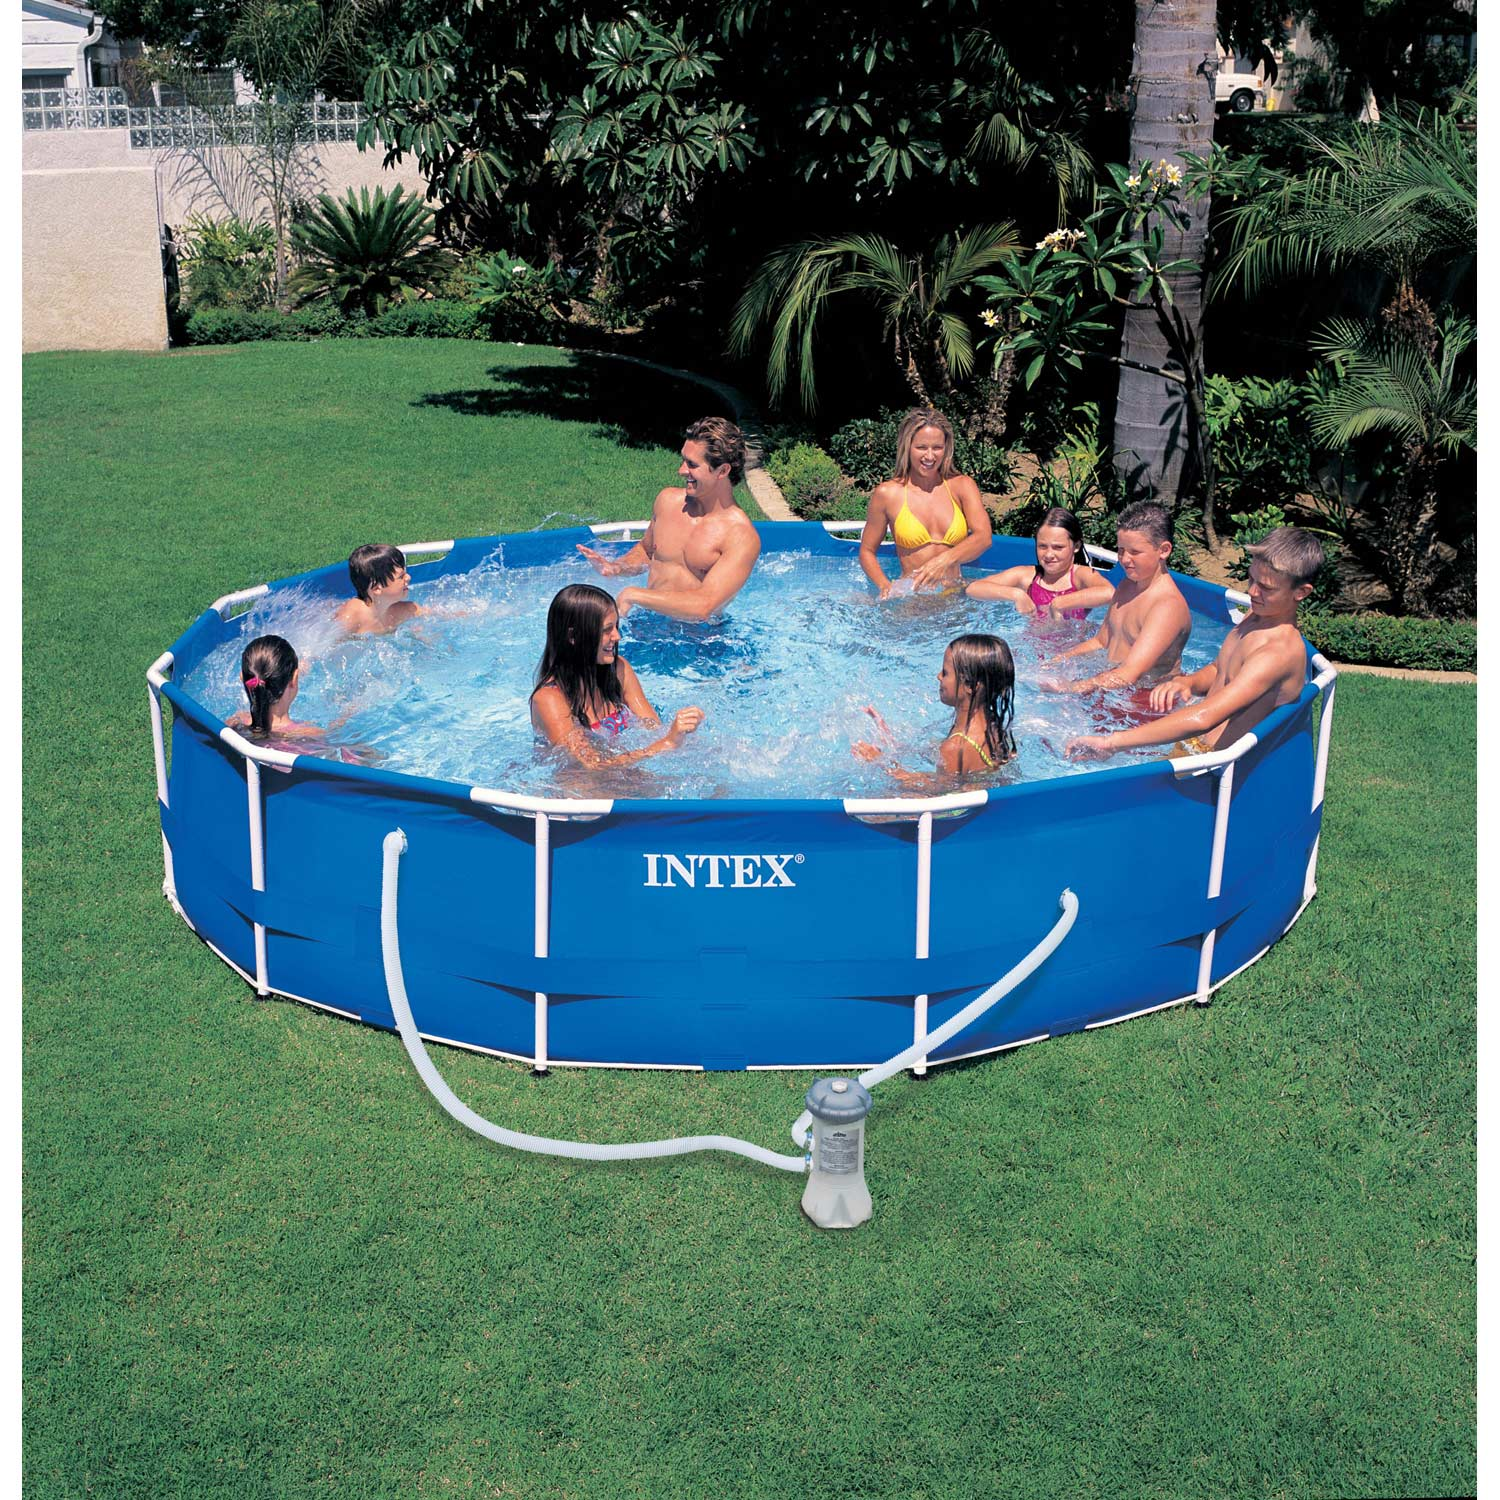 Piscine hors sol autoportante tubulaire metal frame intex for Pompe piscine hors sol leroy merlin